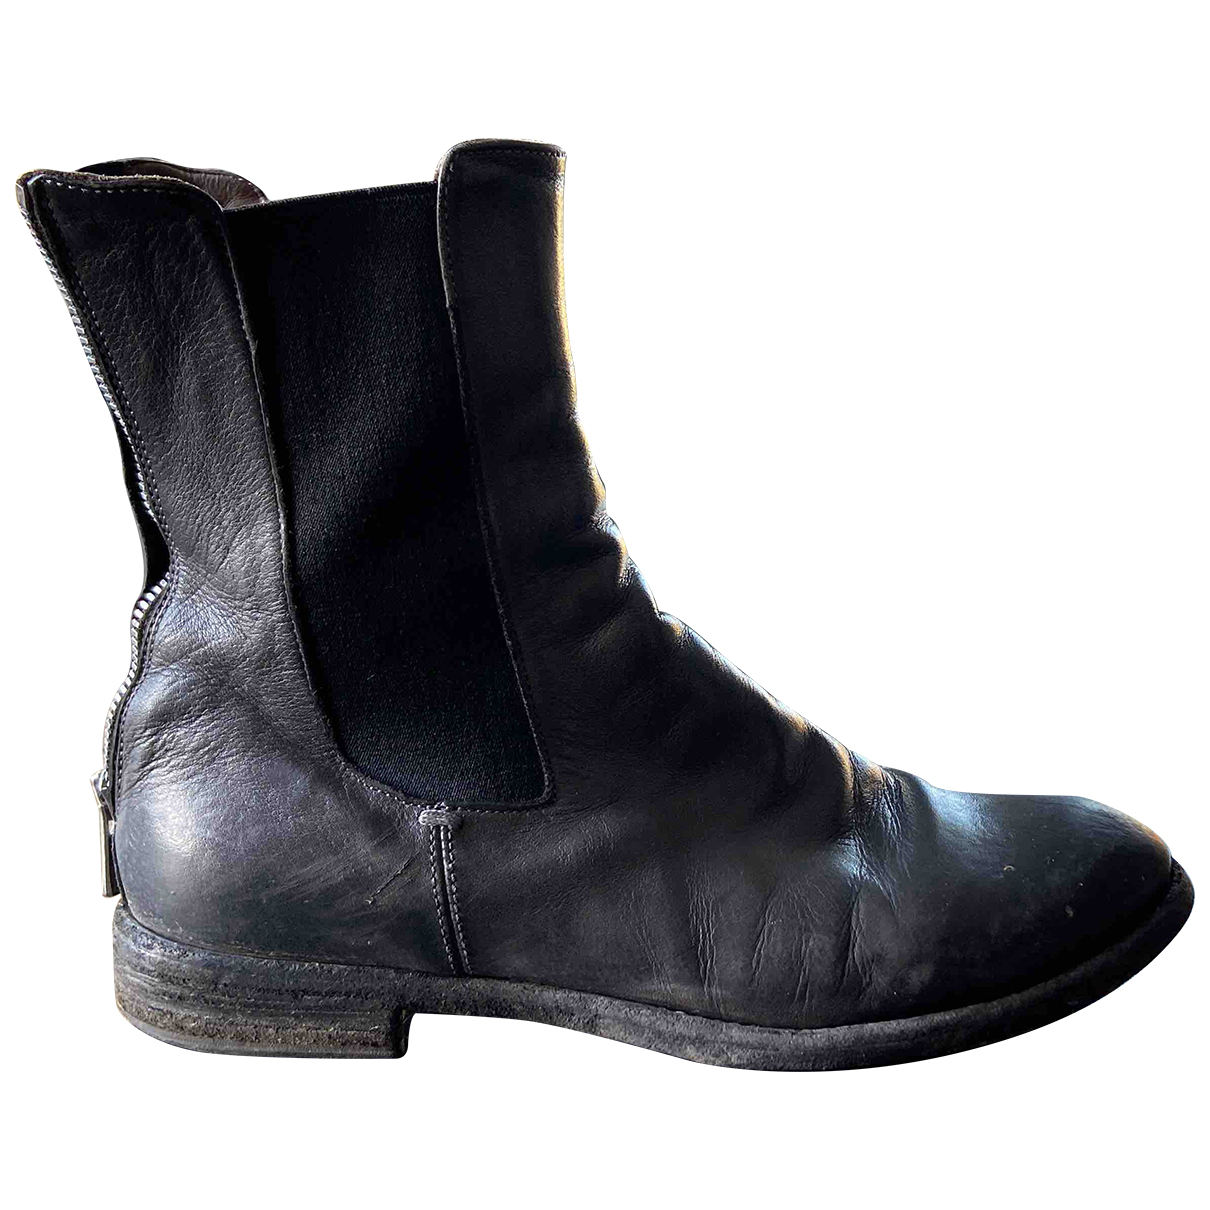 Officine Creative N Grey Leather Ankle boots for Women 36.5 EU